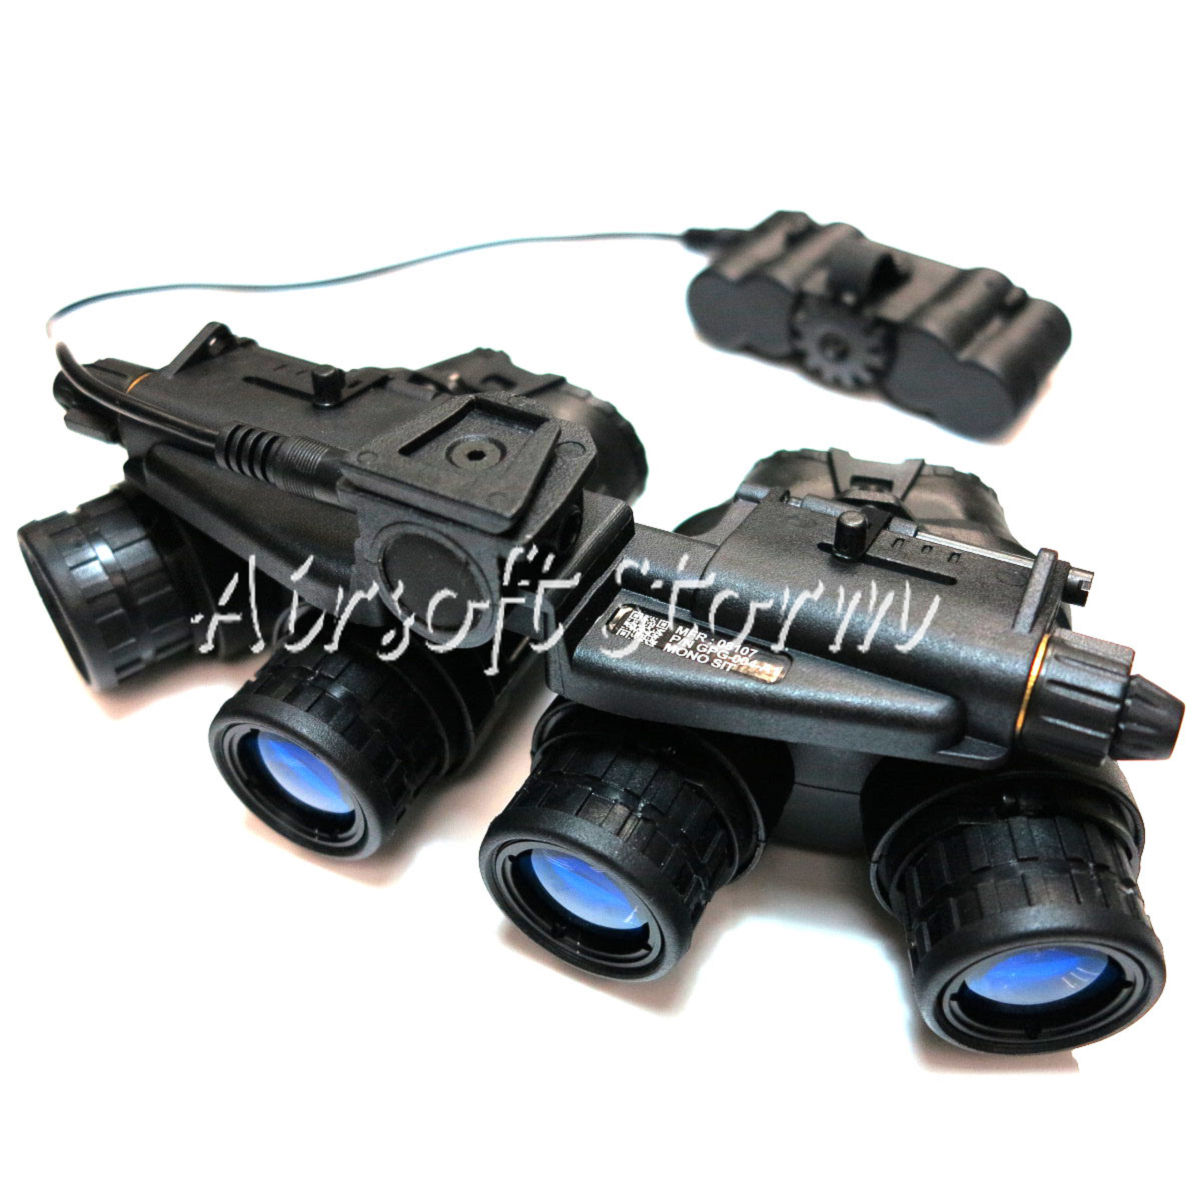 Airsoft-Tactical-Gear-FMA-GPNVG-18-Dummy-Model-Kit-NVG-Night-Vision-Goggle-Black